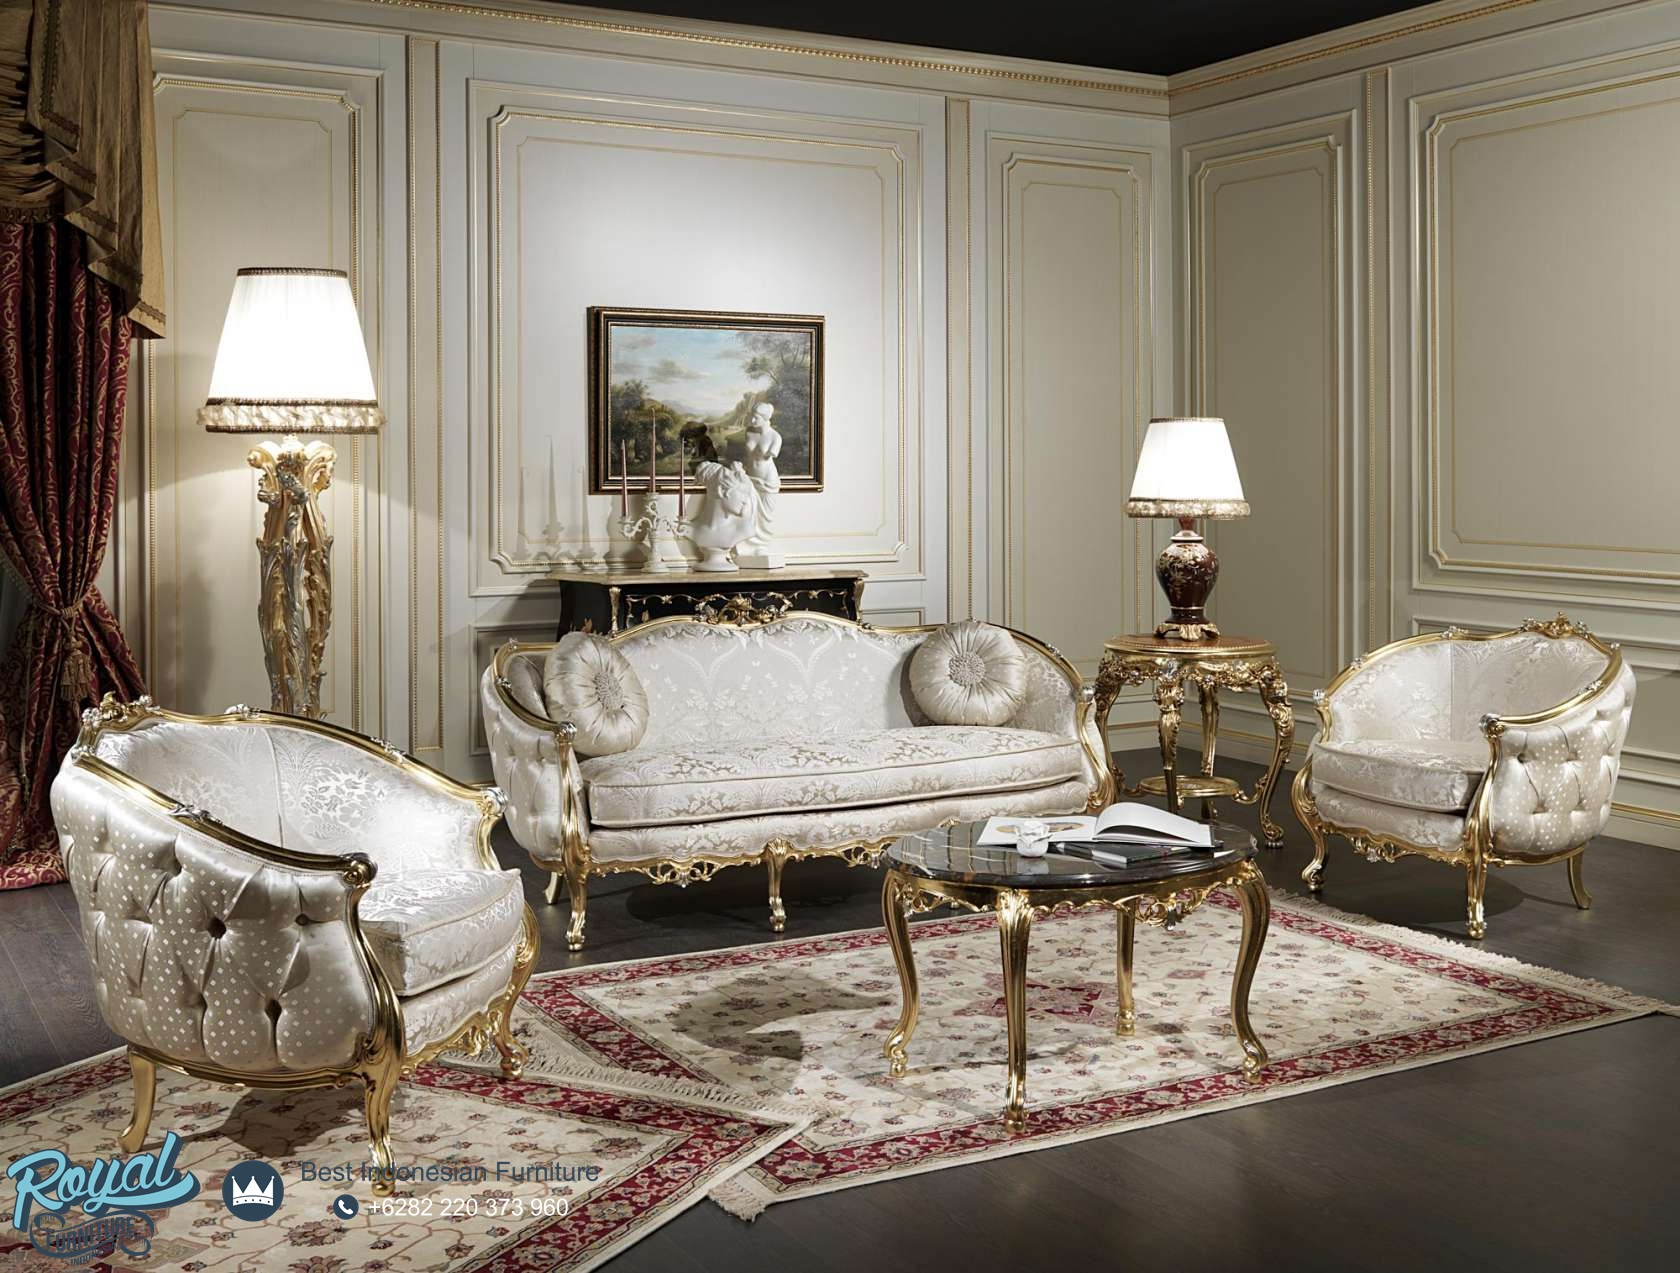 classic italian living room furniture set sofa tamu model italia klasik mewah terbaru venezia 23812